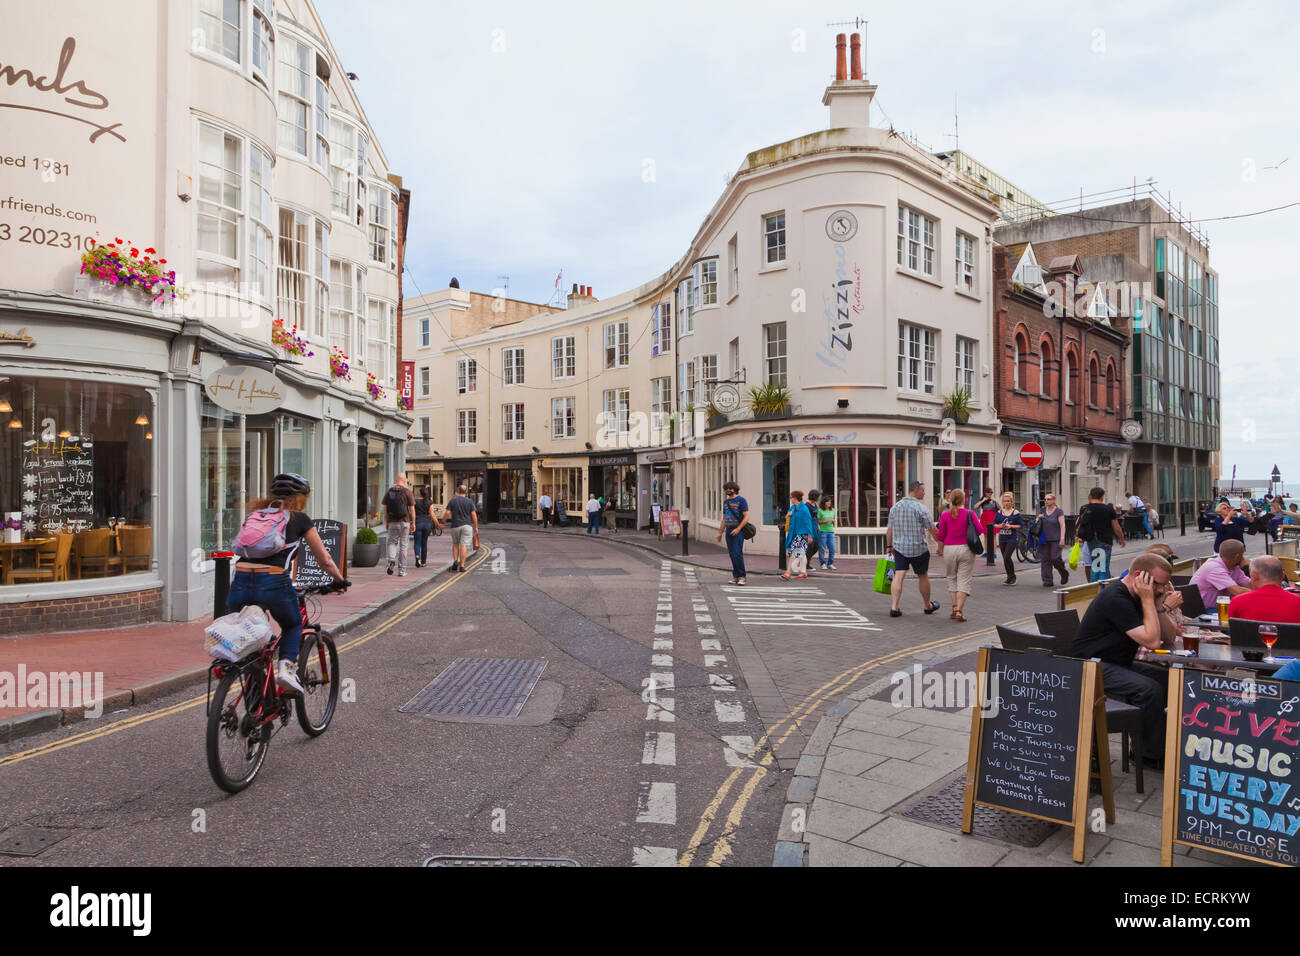 PUBS AND SHOPS AT THE LANES QUARTER, BRIGHTON, SEASIDE RESORT, SUSSEX, ENGLAND, GREAT BRITAIN - Stock Image